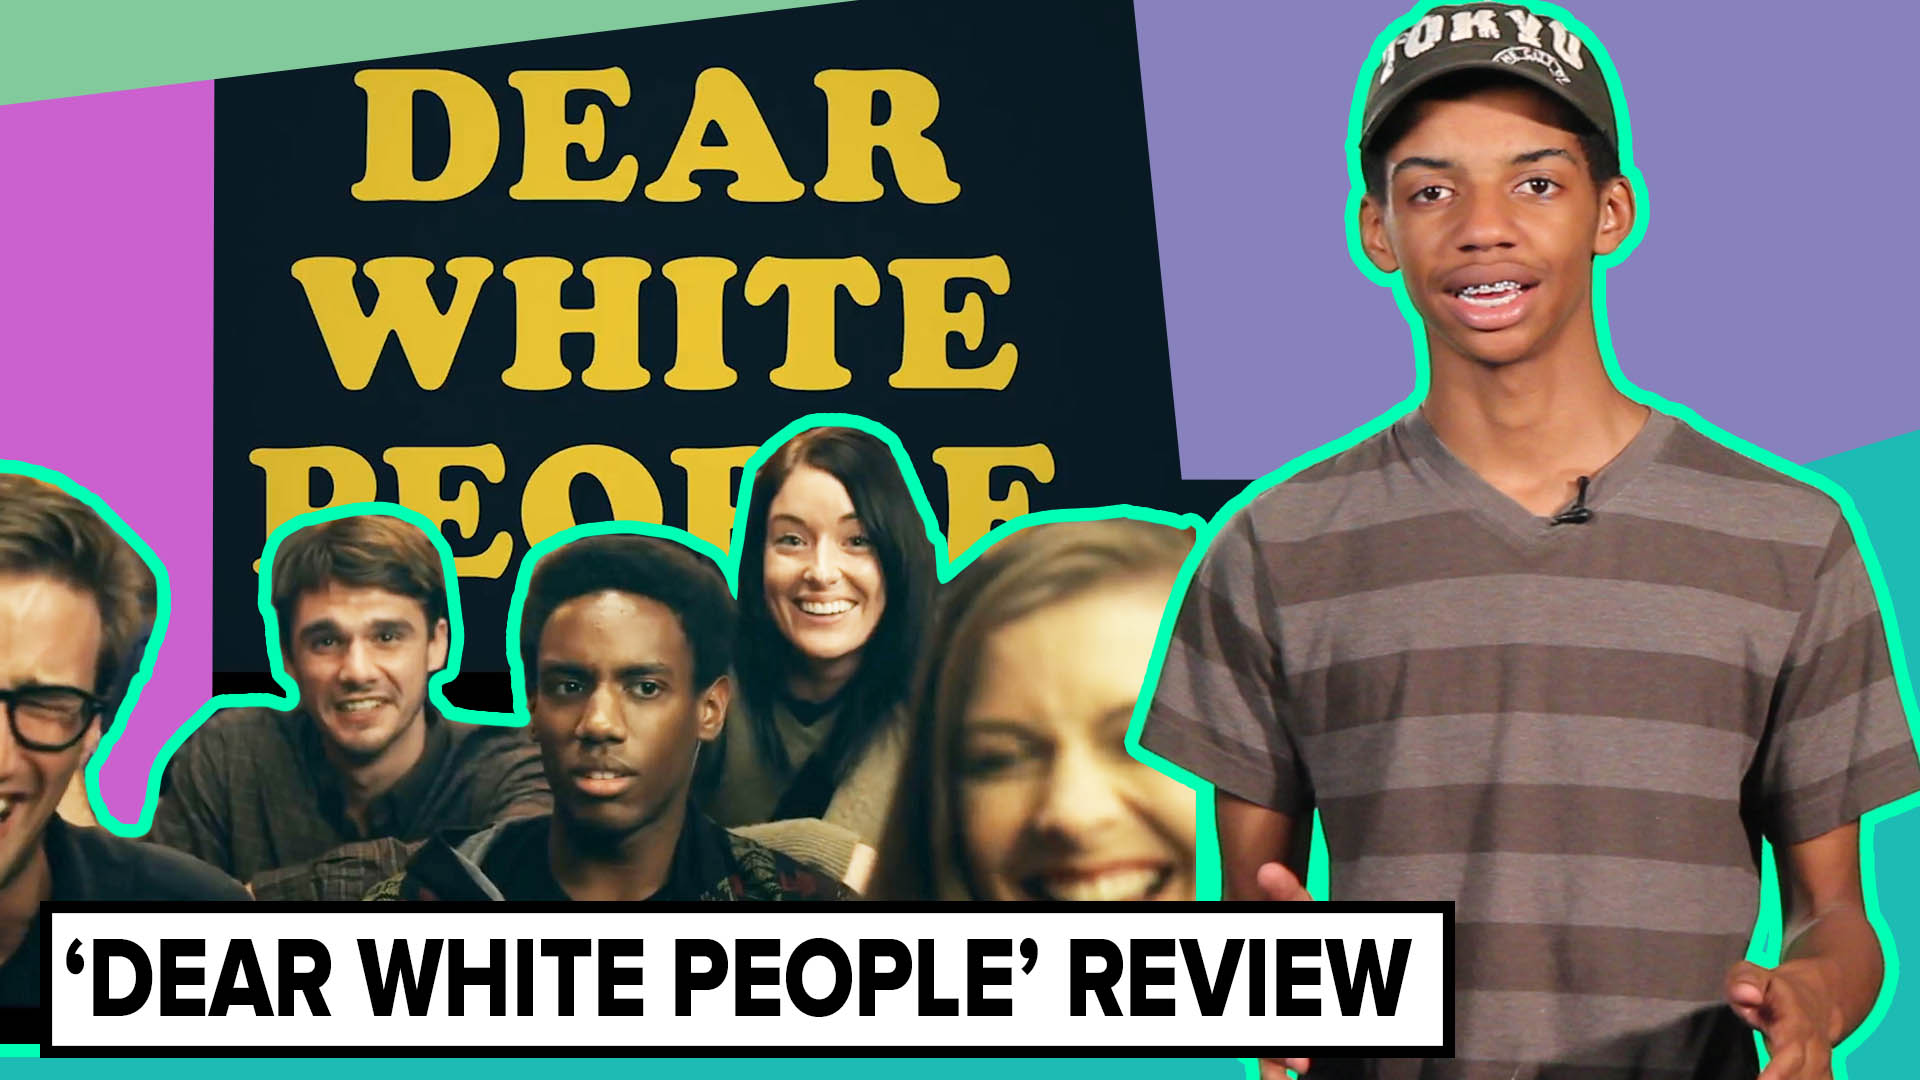 Dear White People, Don't Be Mad